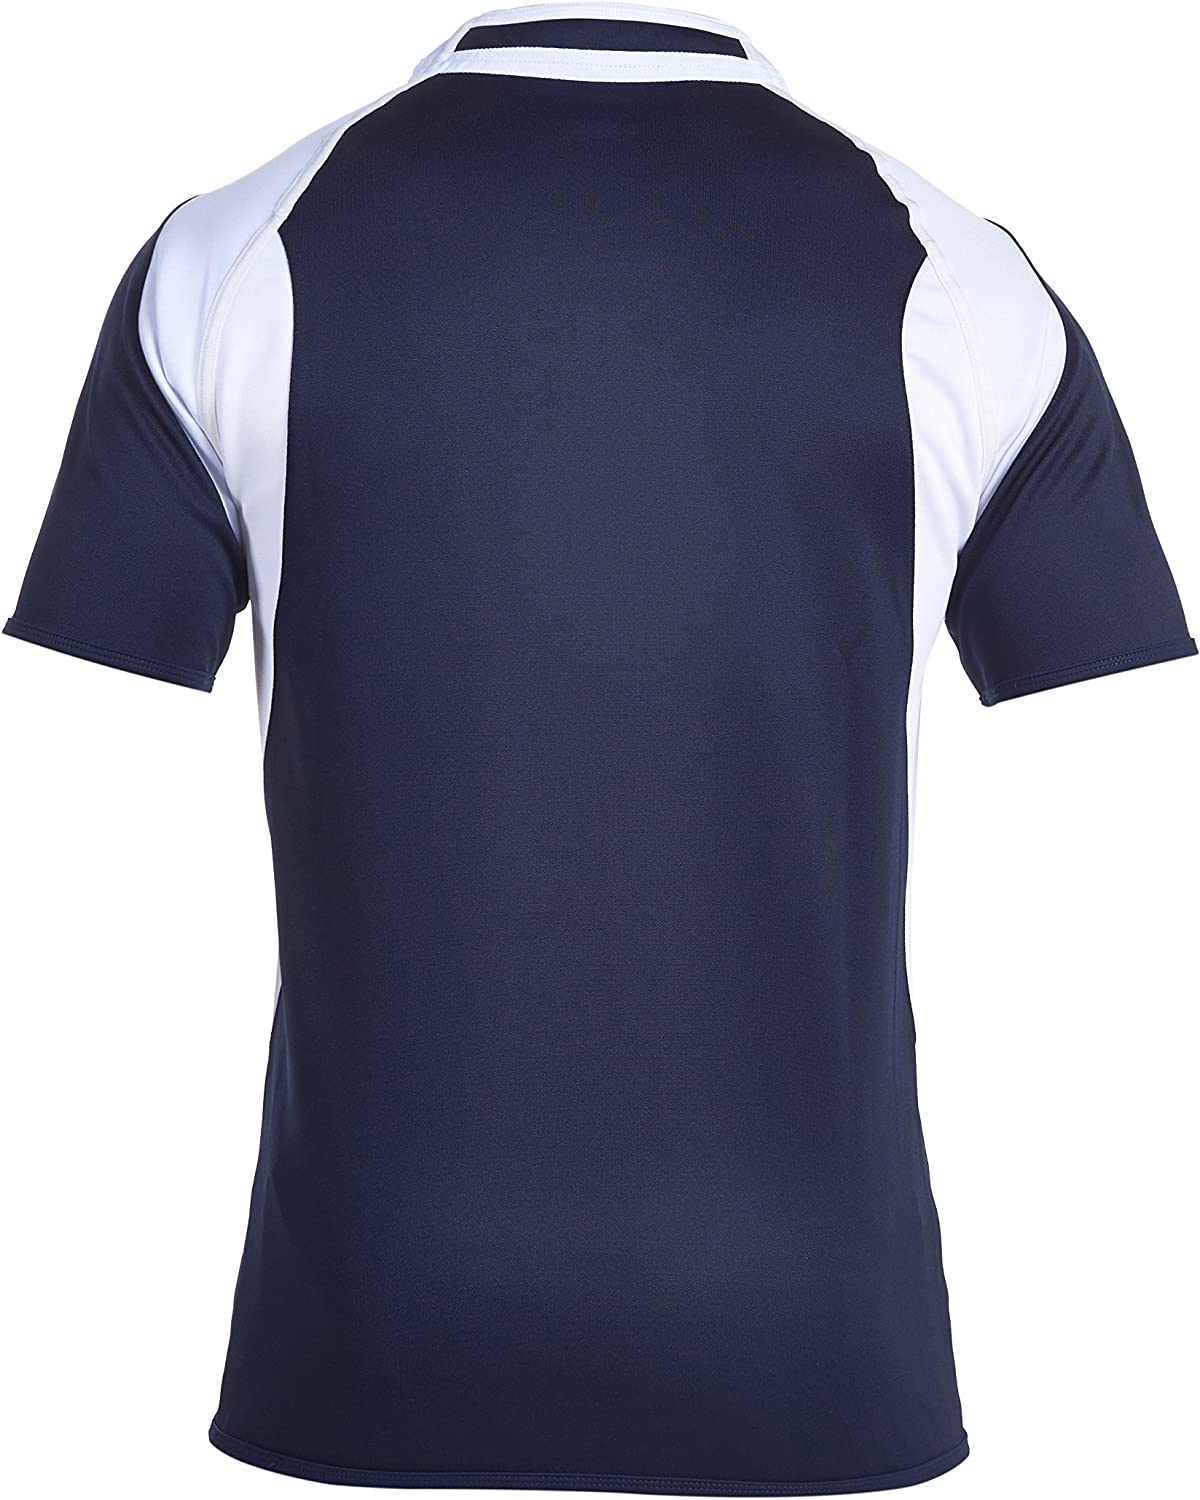 Canterbury Boys Challenge Rugby Jersey